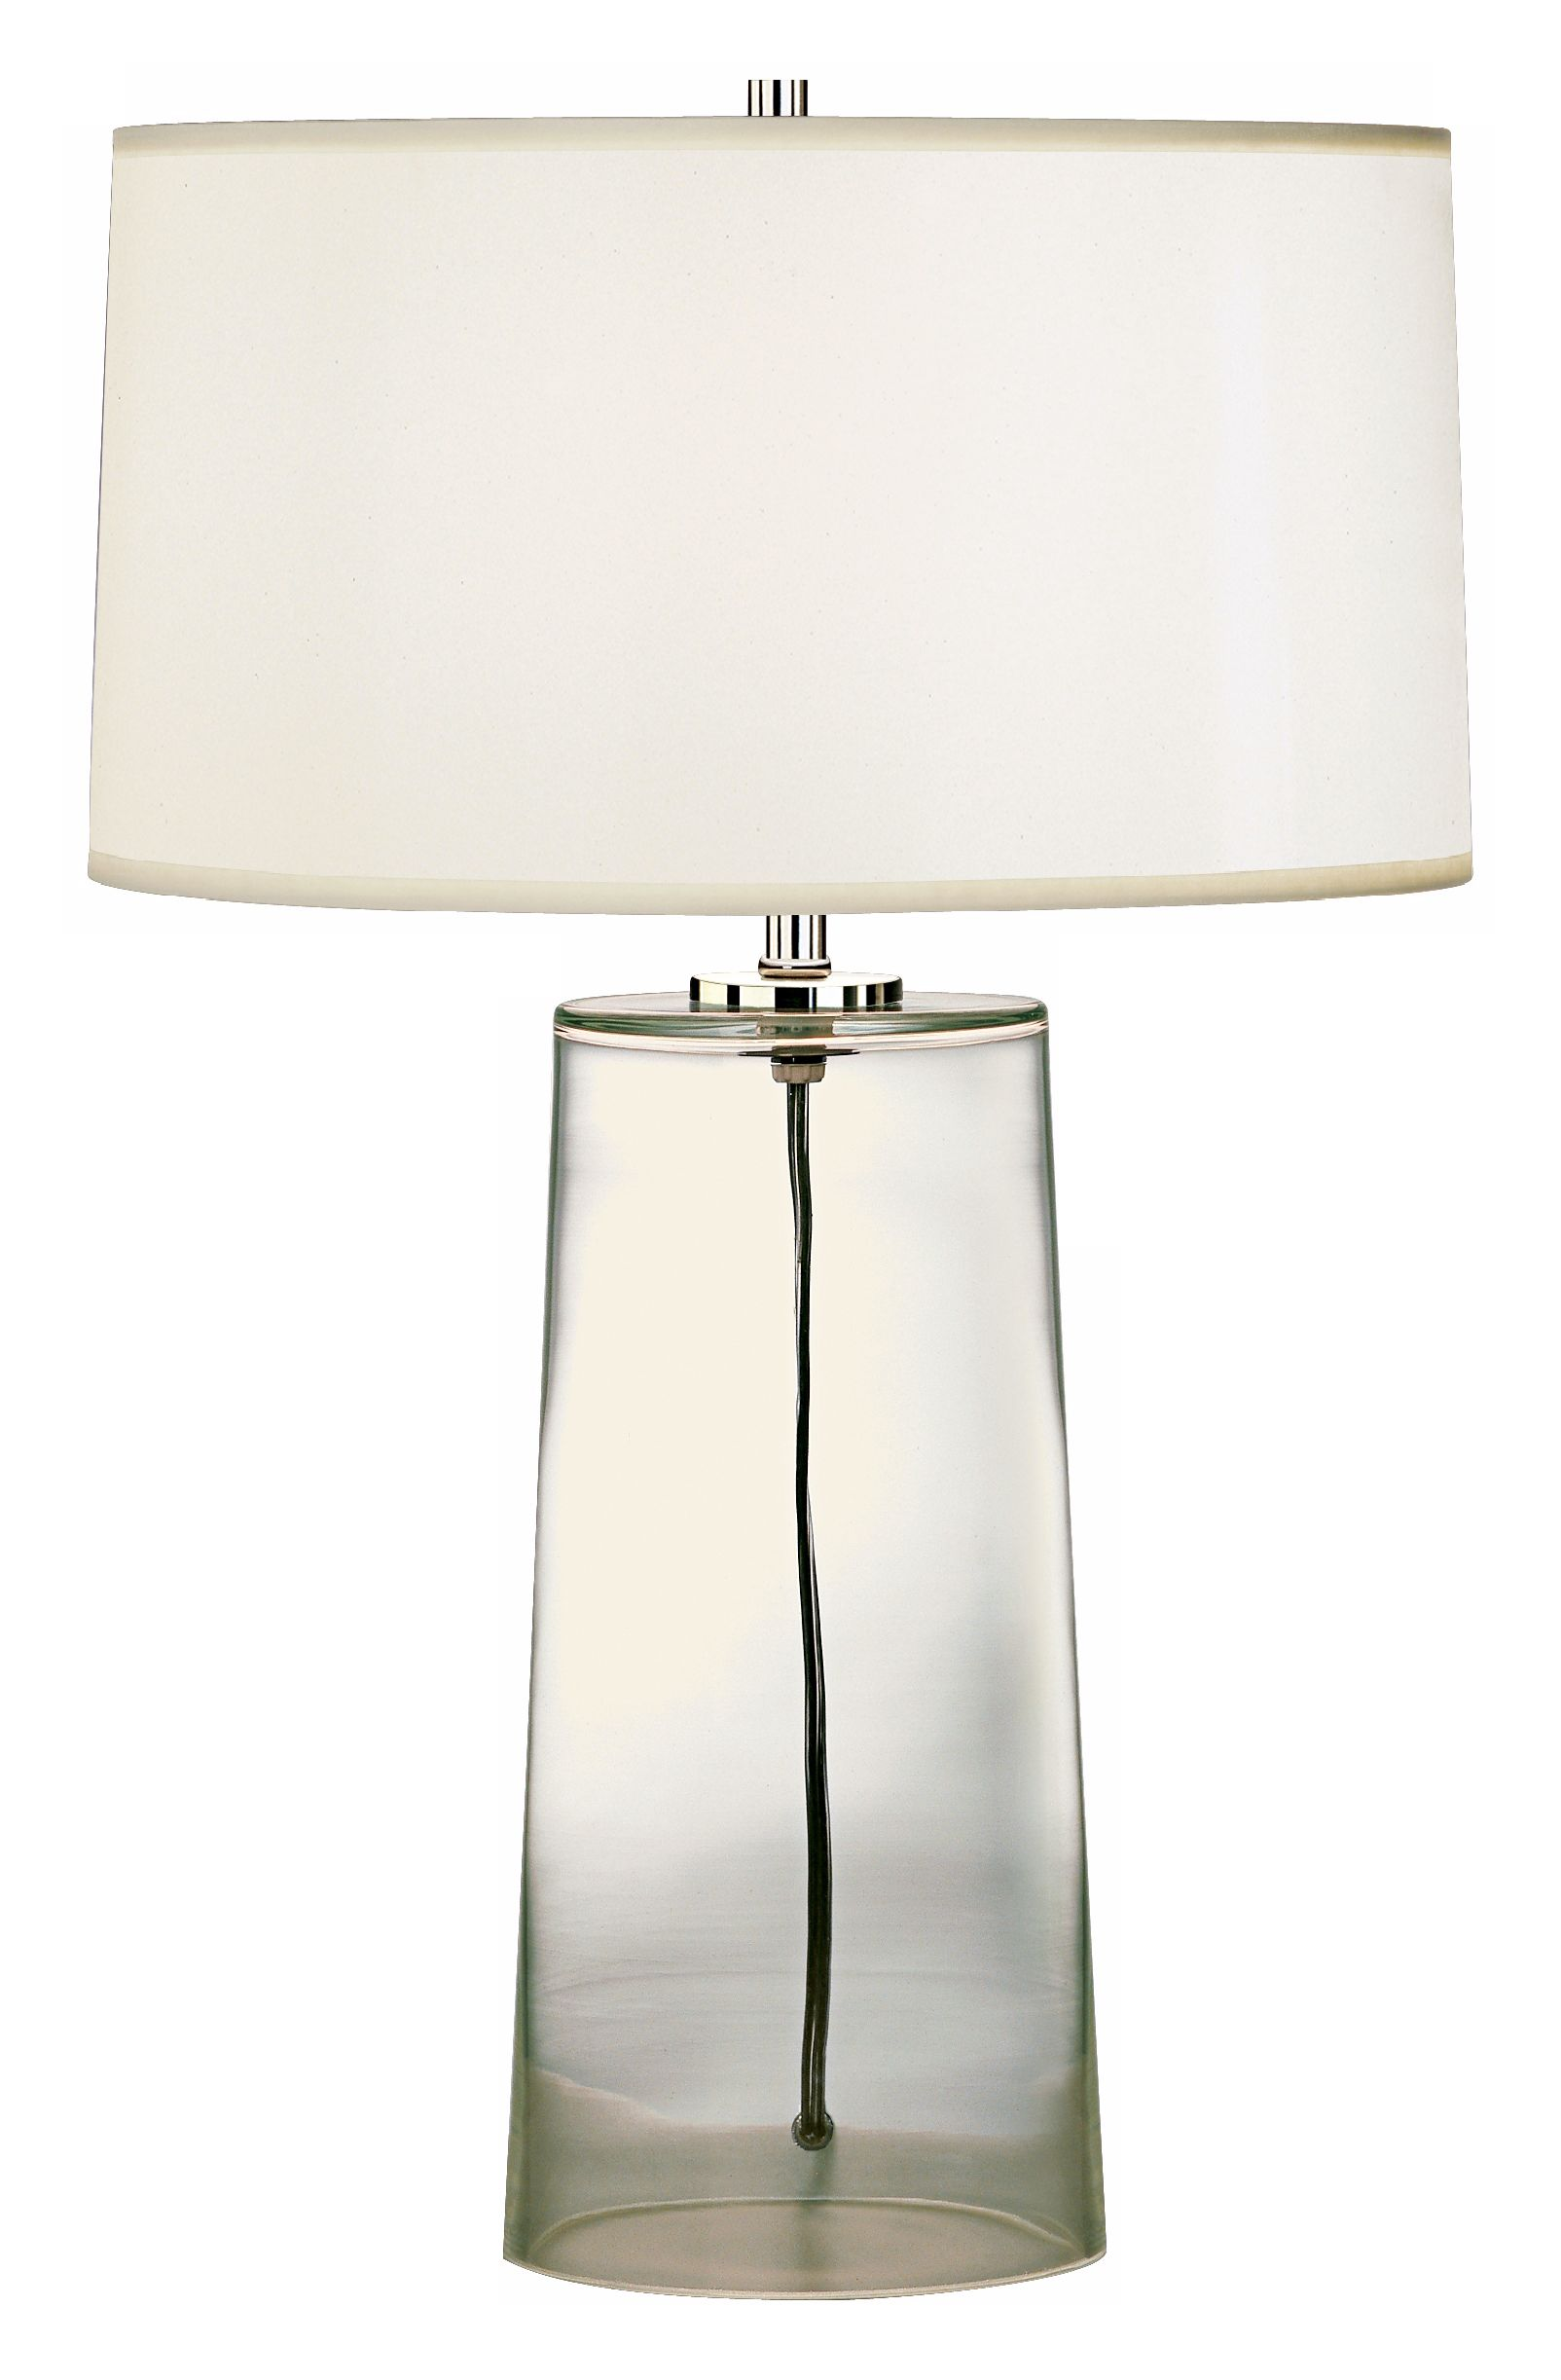 Superb Robert Abbey Clear Glass Base With White Shade Table Lamp